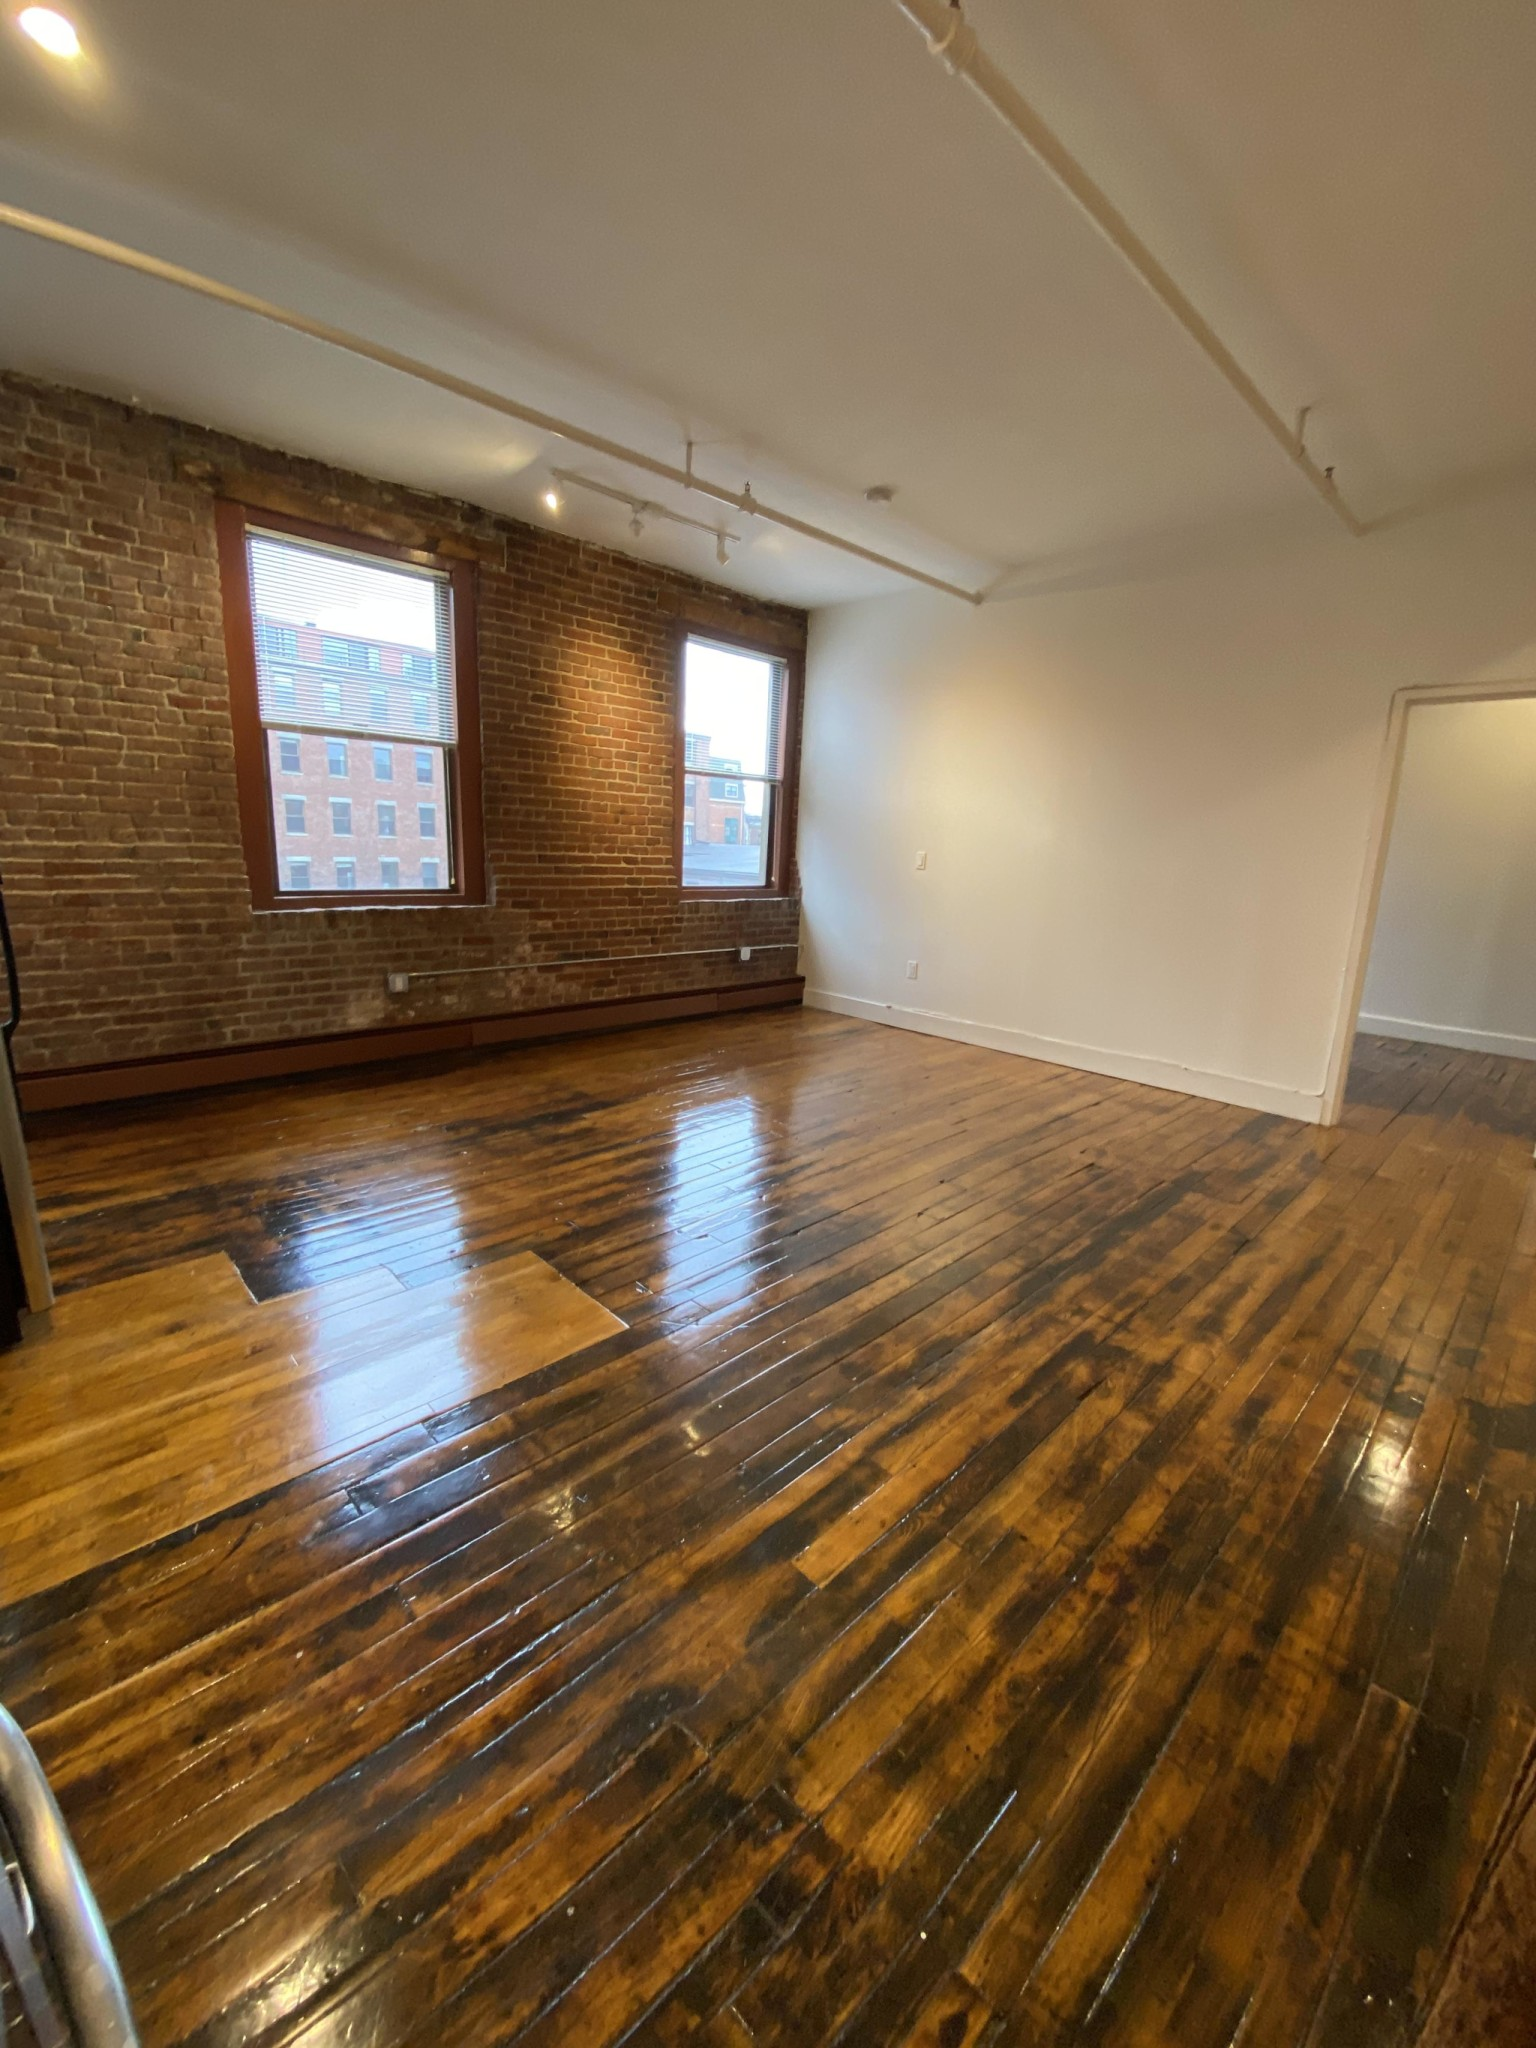 1 Bed, 1 Bath apartment in Boston for $2,900